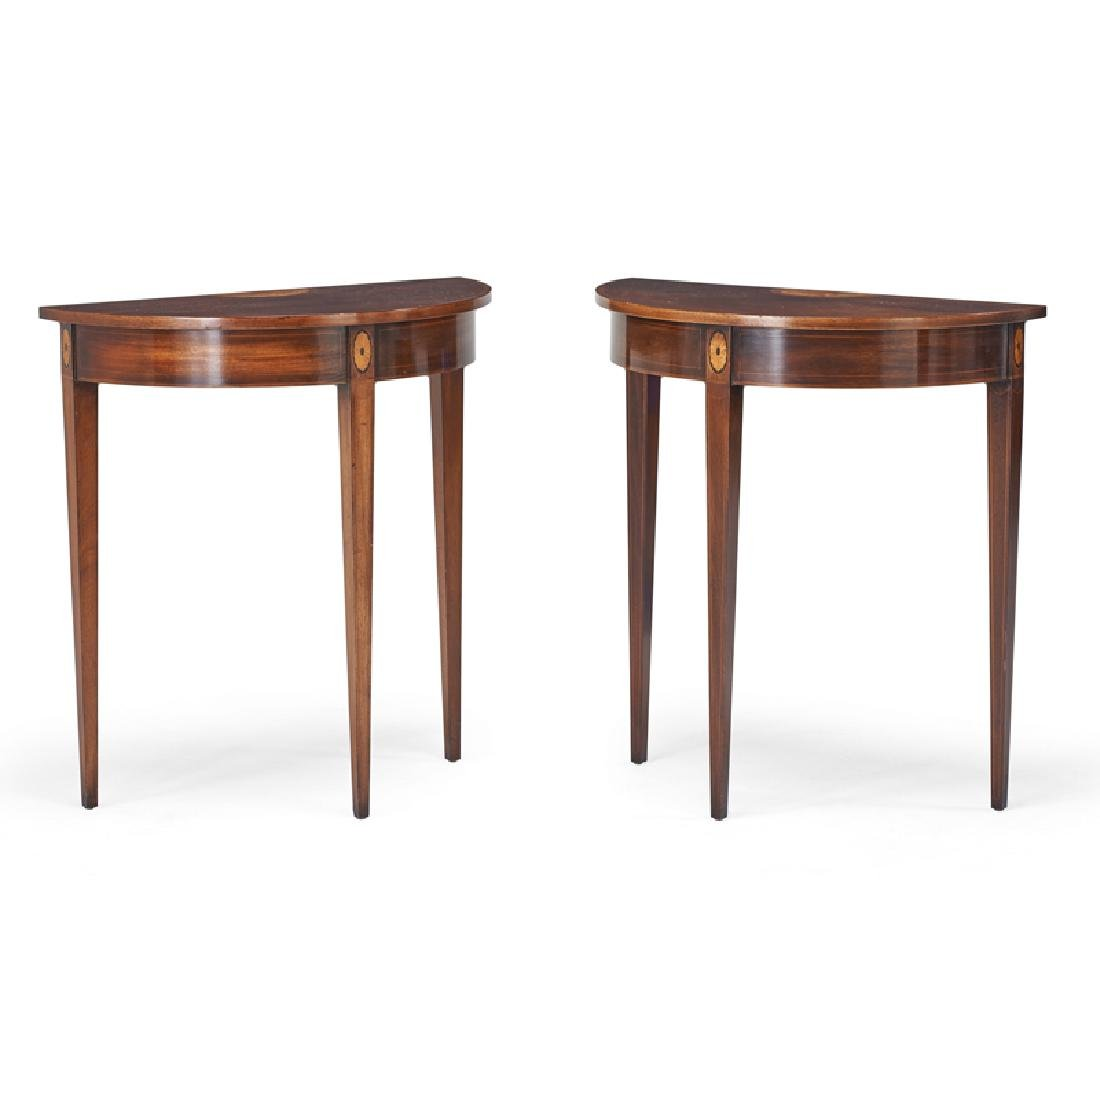 PAIR OF GEORGE III STYLE MAHOGANY CONSOLE TABLES